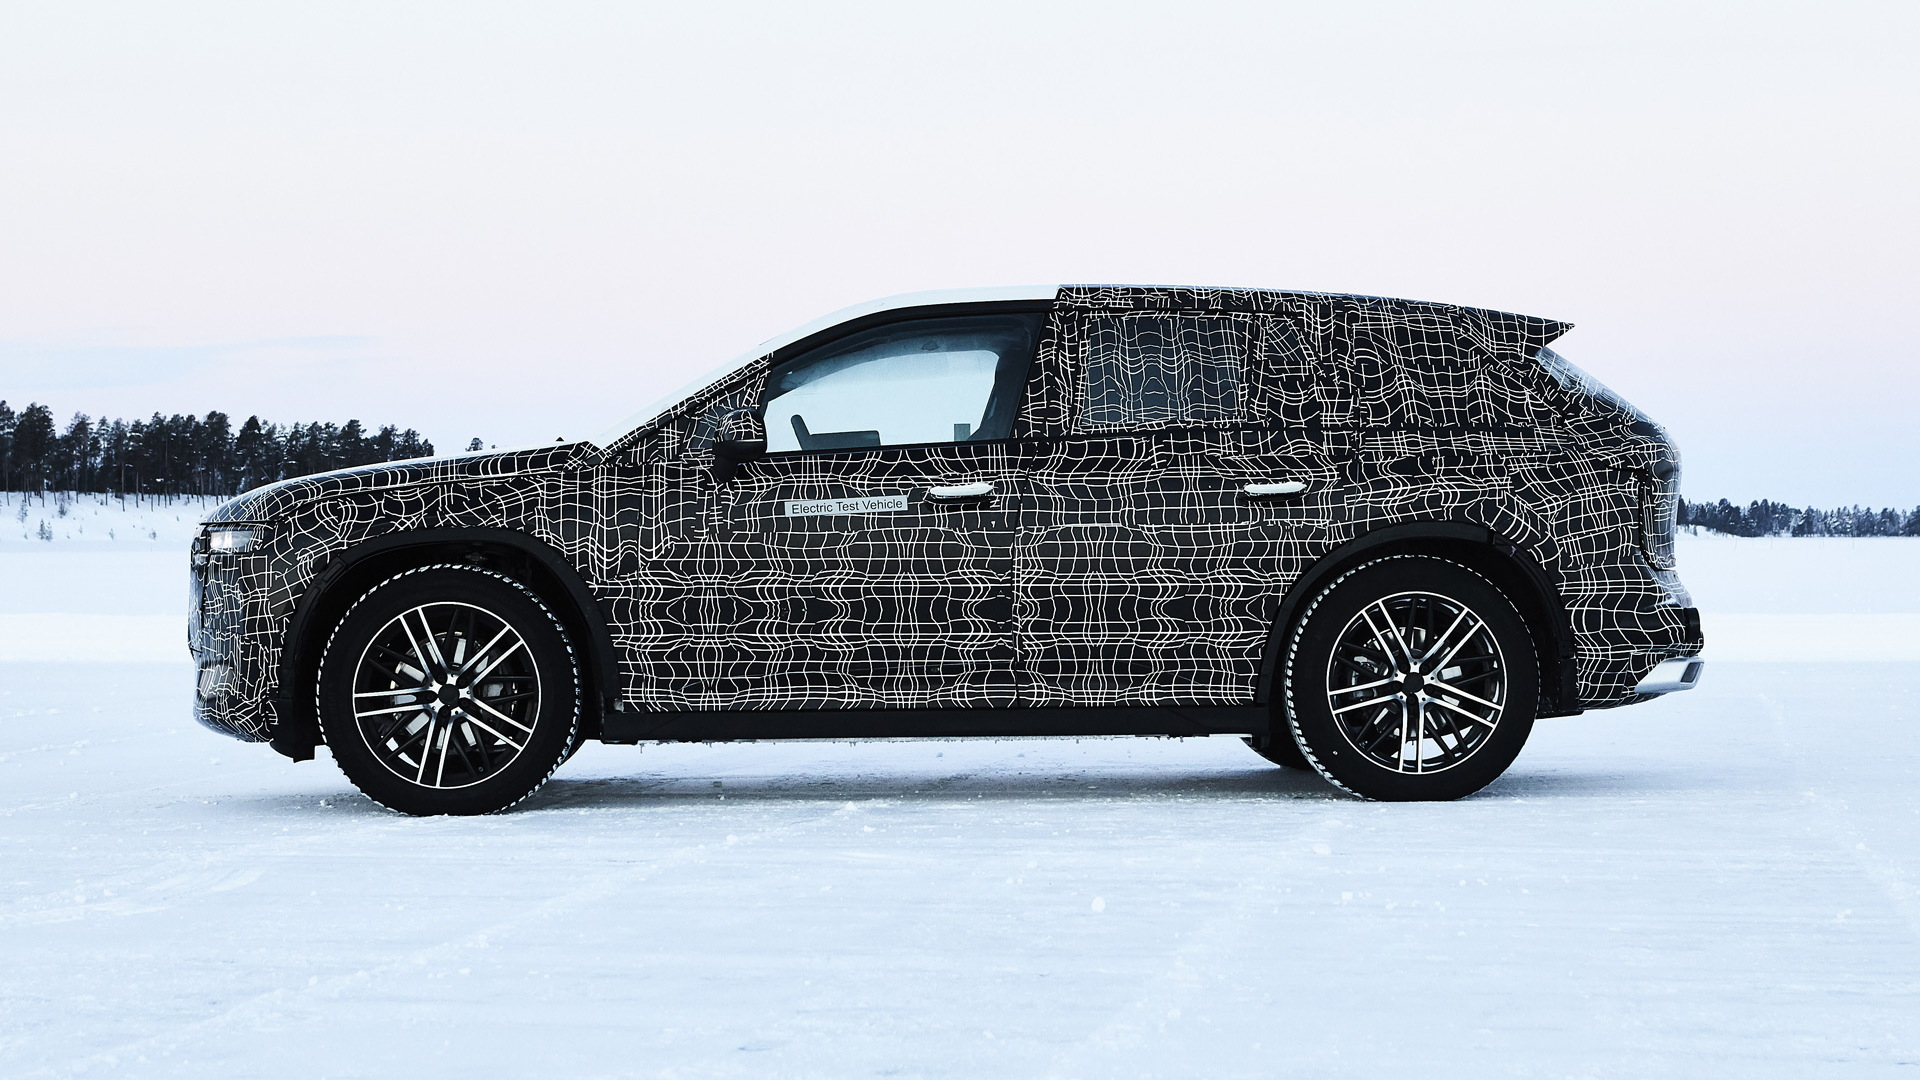 Prototype for BMW iNext electric SUV due in 2021